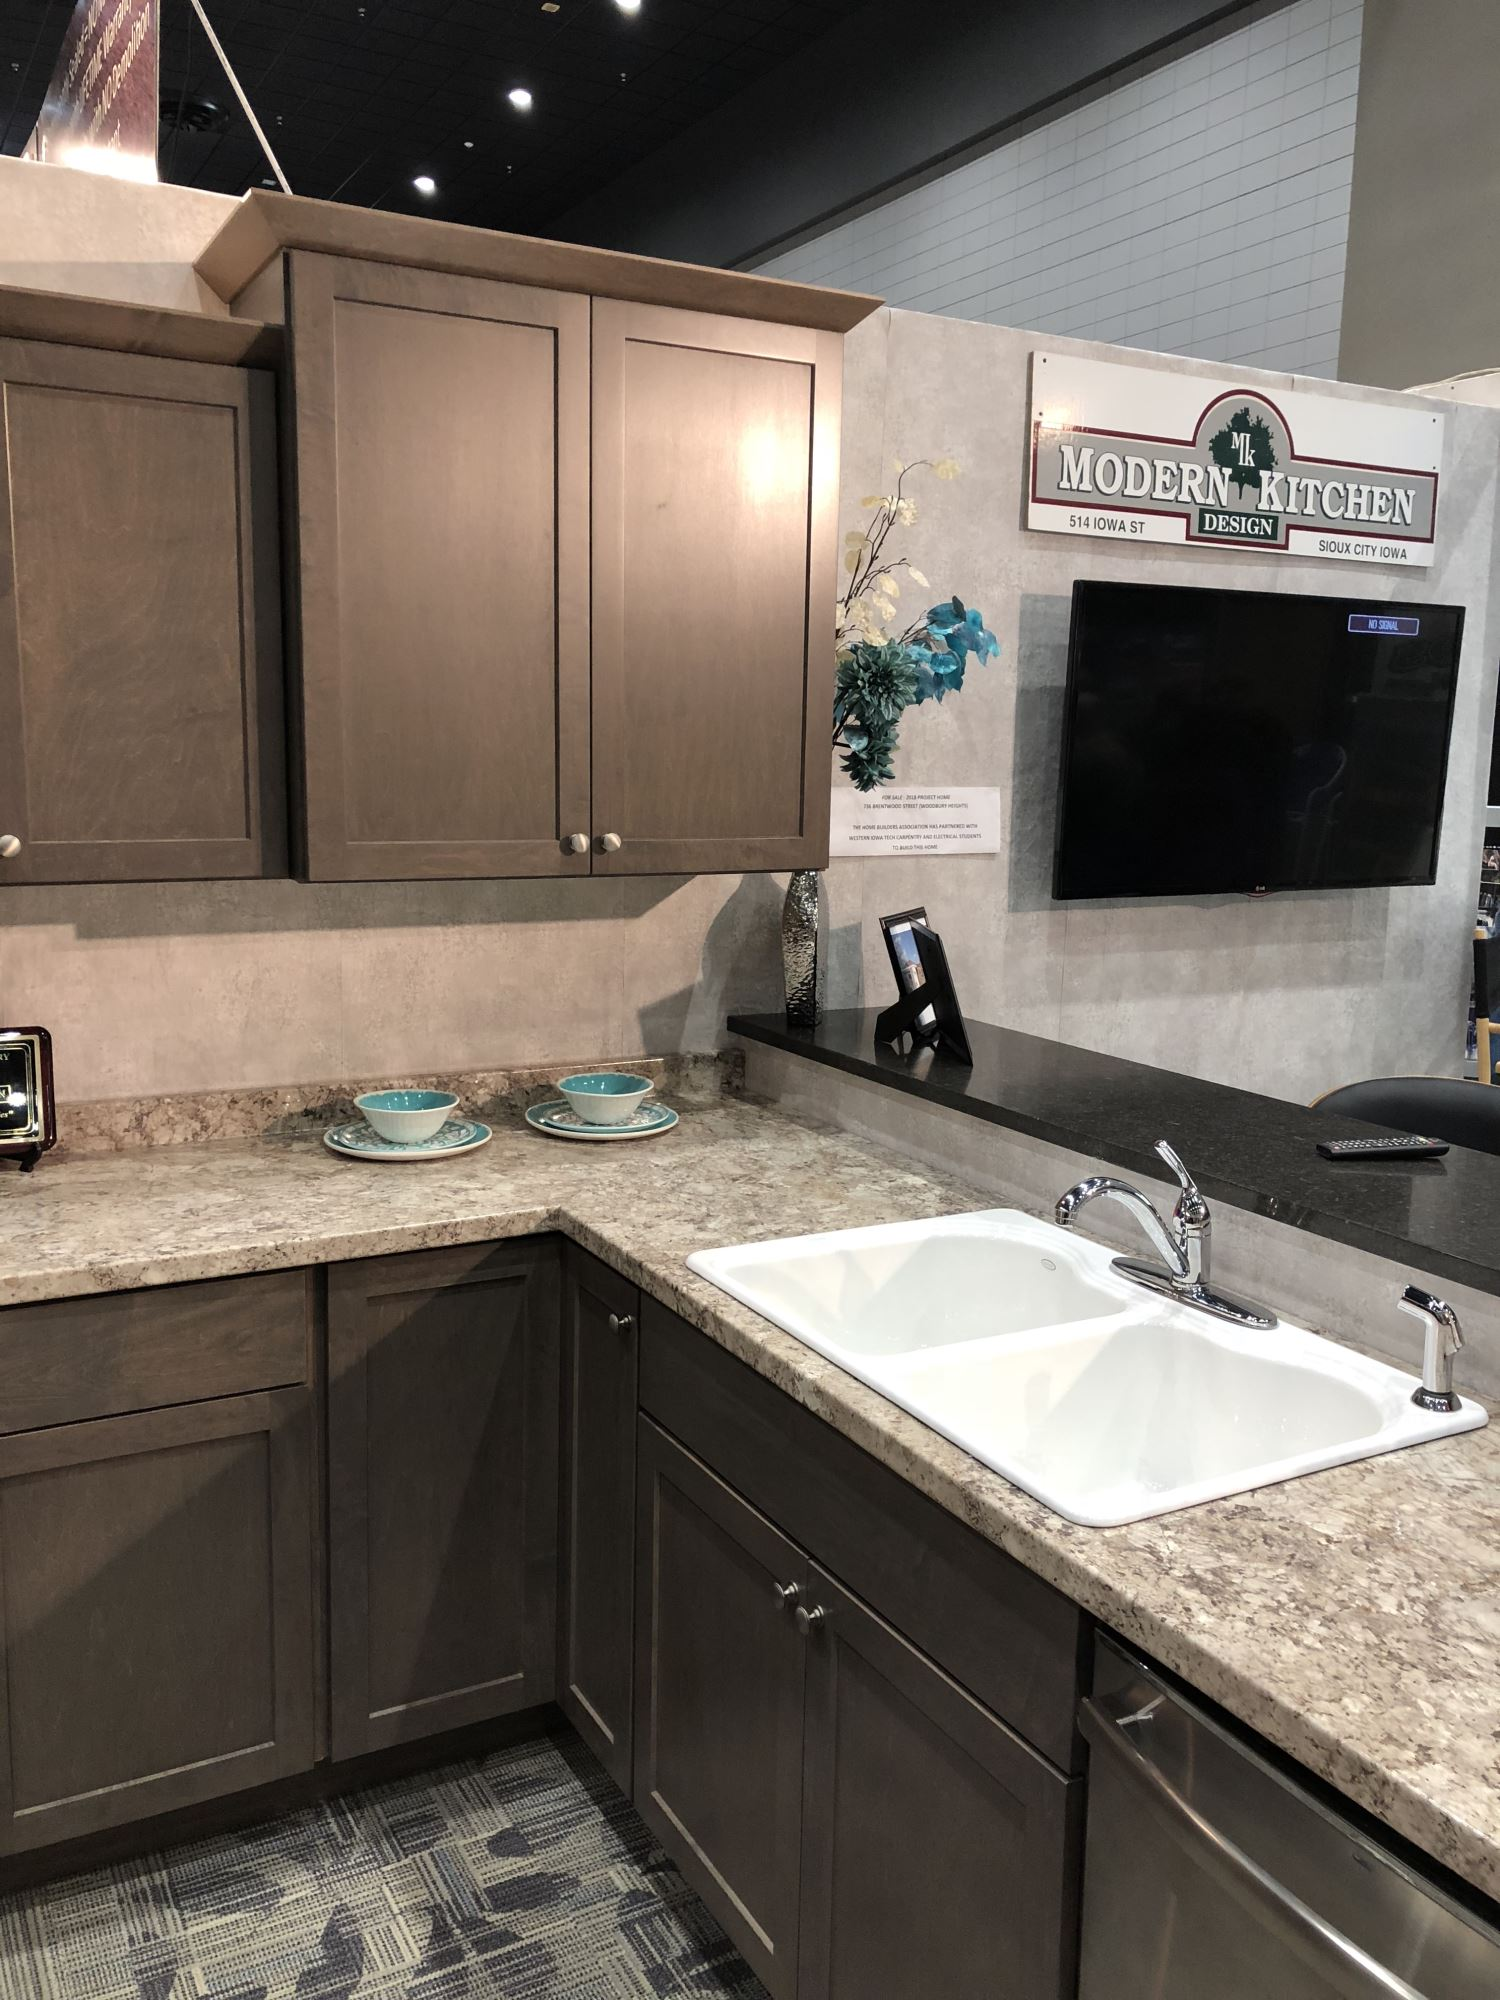 Modern Kitchen Design Displays At Sioux City Ia Home Show Vt Industries Inc